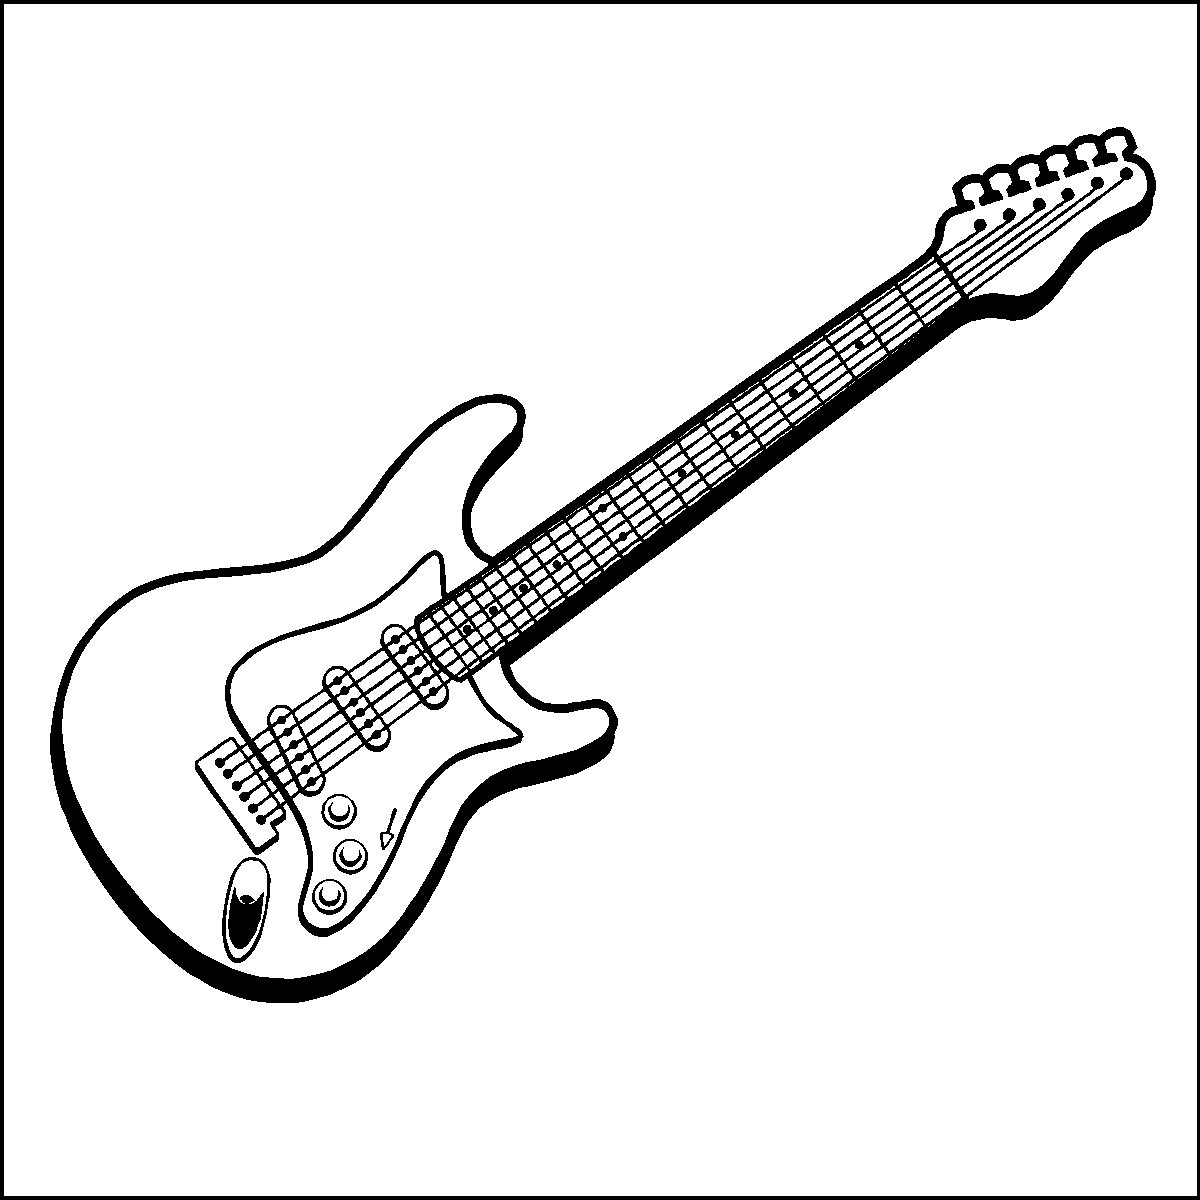 guitar coloring picture electric guitar outline drawing at getdrawings free download coloring guitar picture